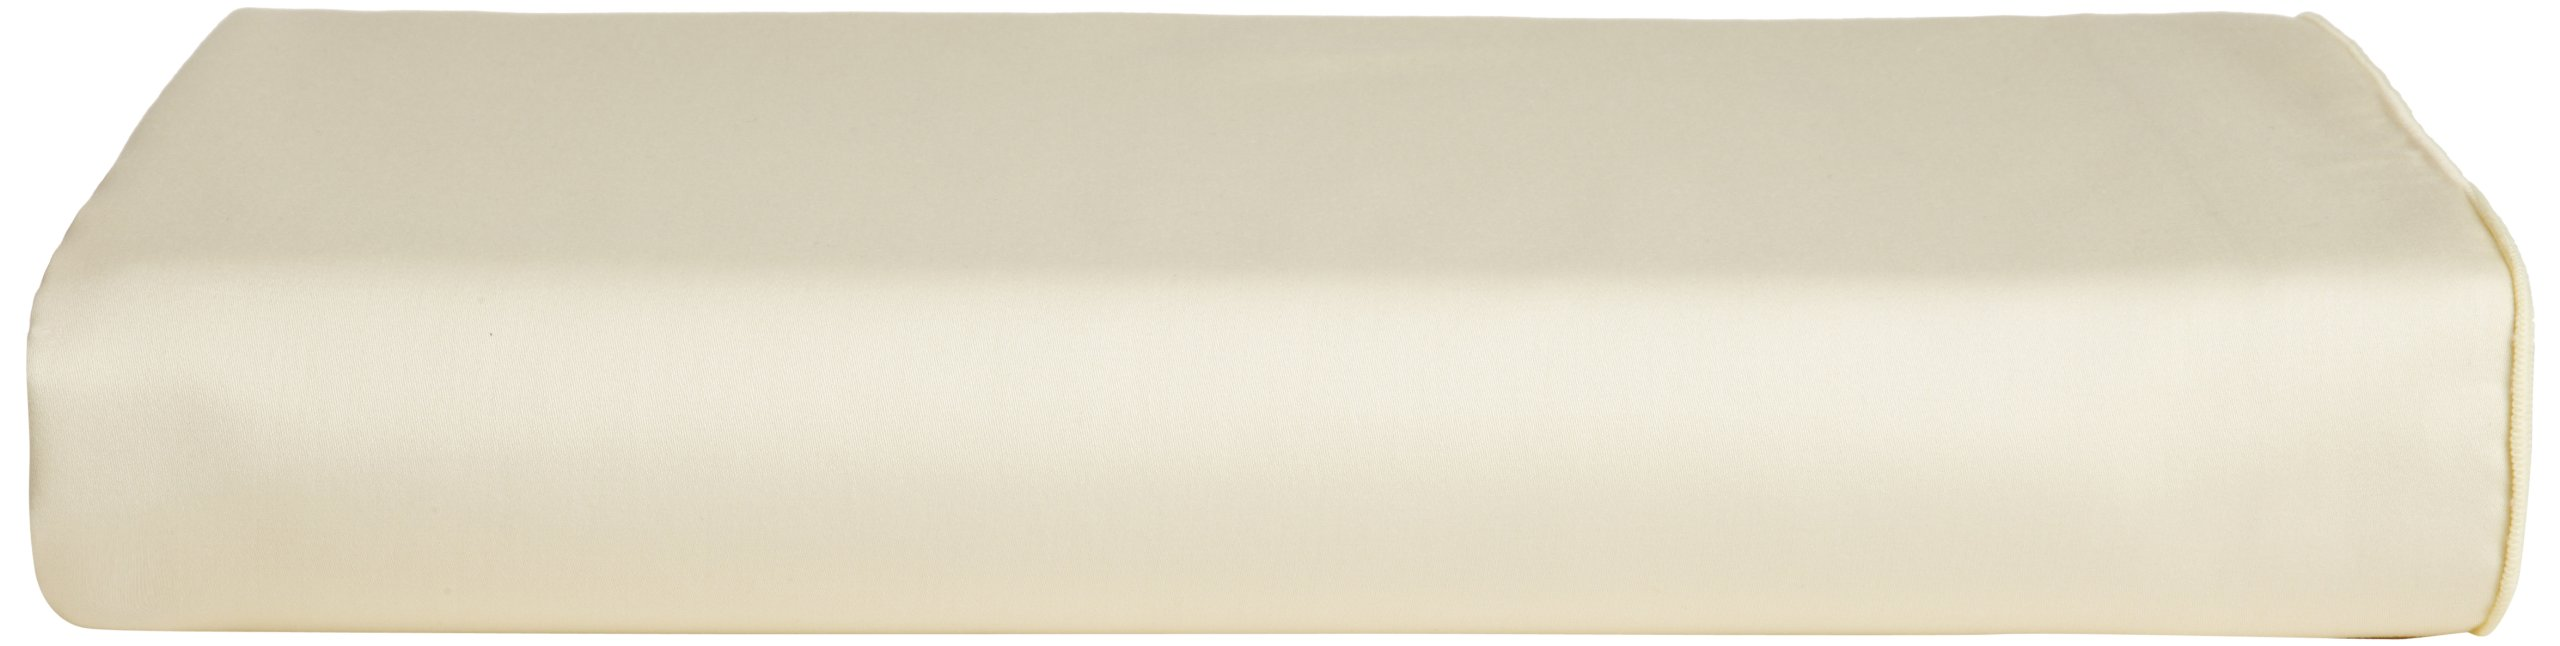 Calvin Klein Home Luminous Pearl Edge Solid Sateen Fitted Sheet, King